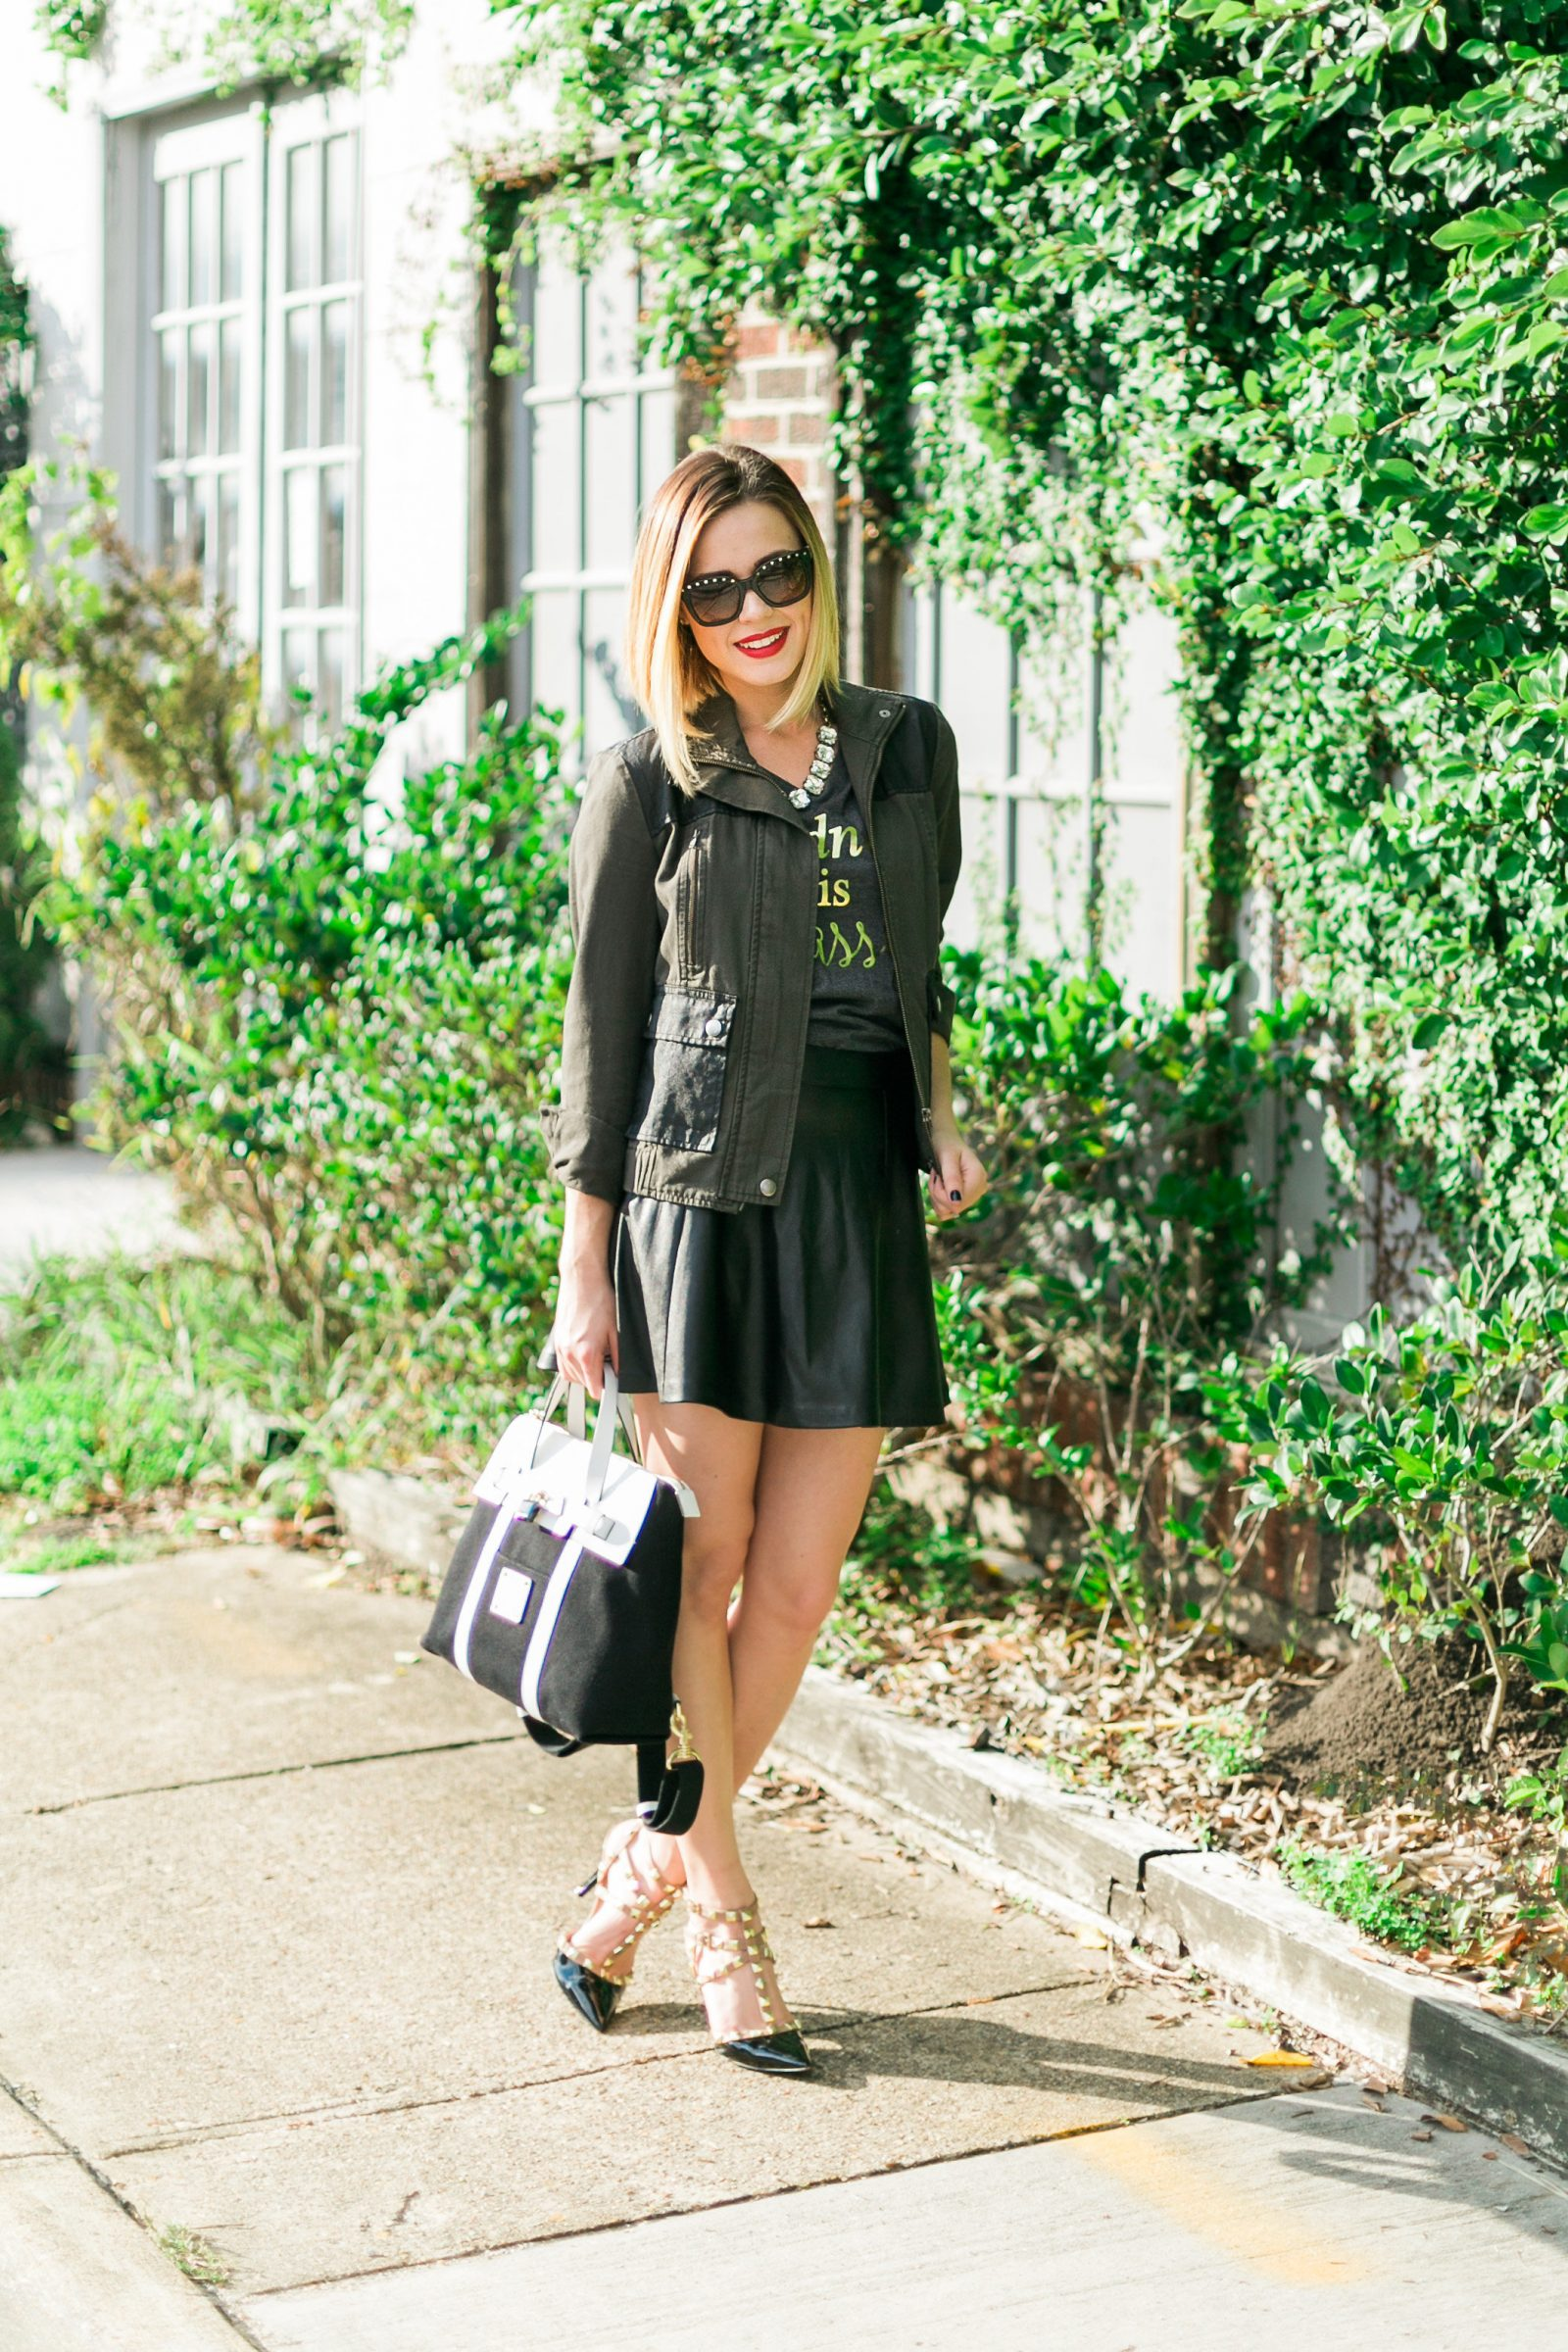 Houston fashion blogger Uptown with Elly Brown wears a faux leather skirt with Valentino stud dupes